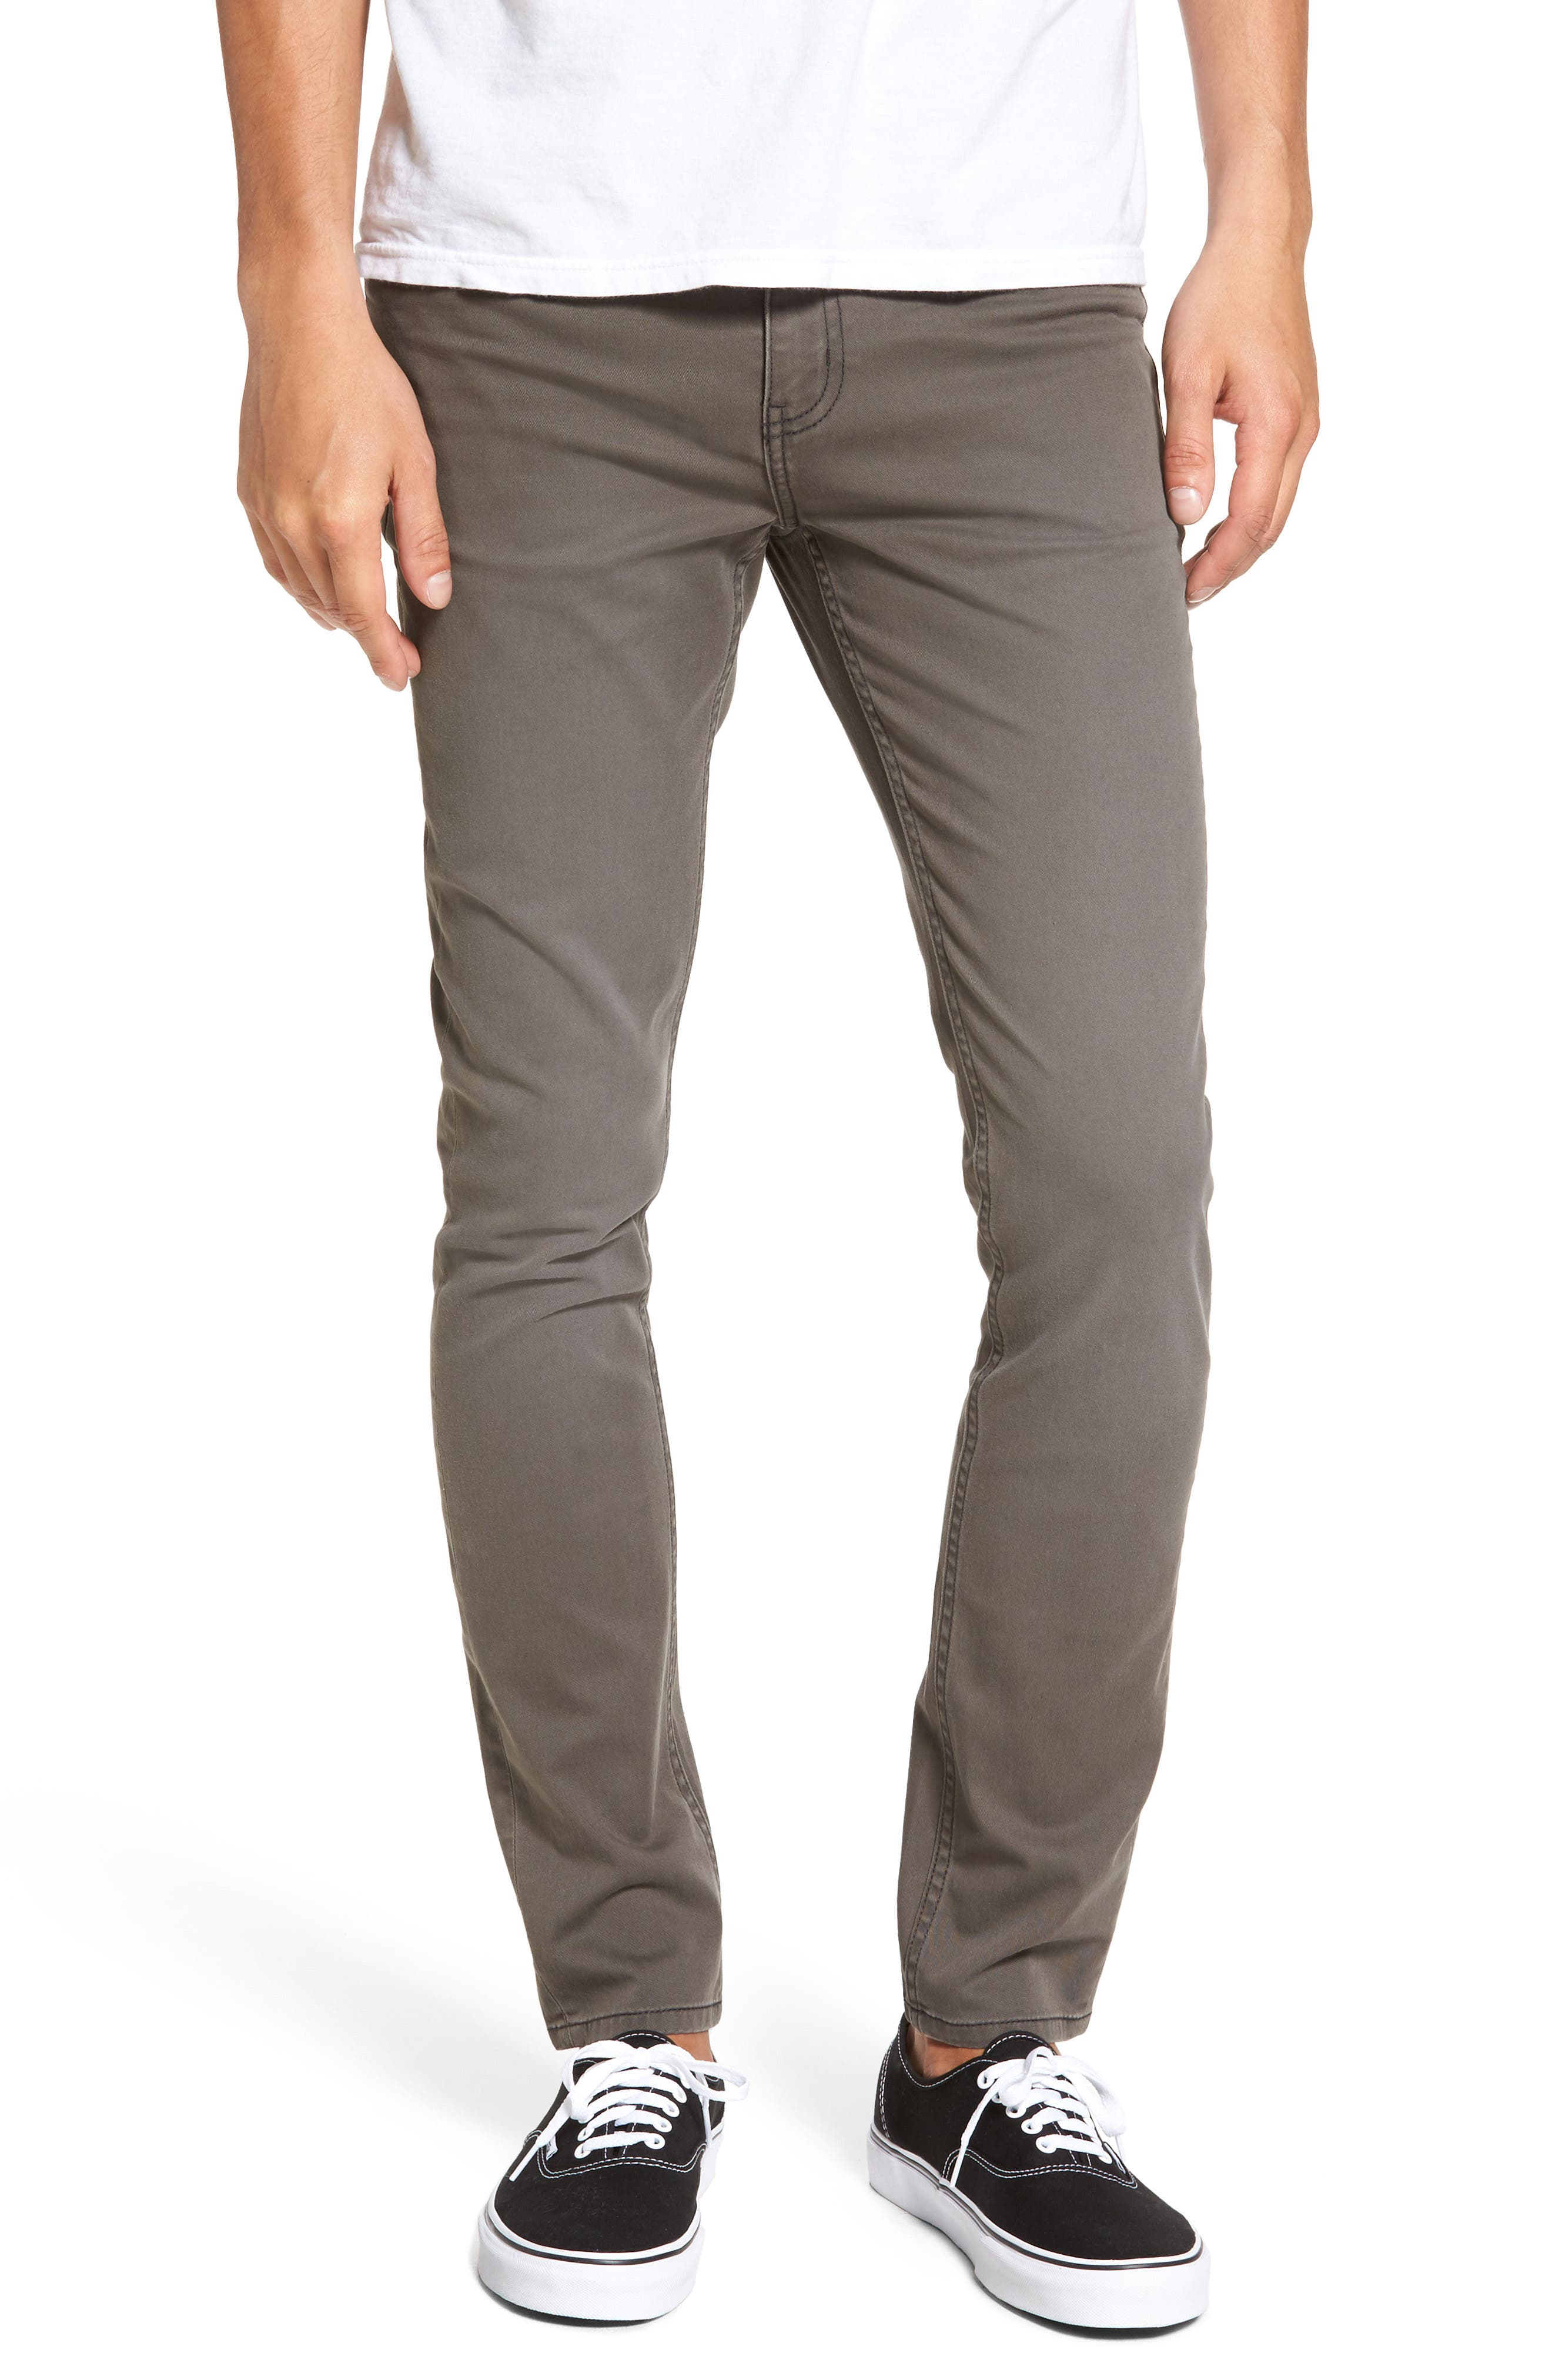 Tight Skinny Fit Jeans,                         Main,                         color, 250